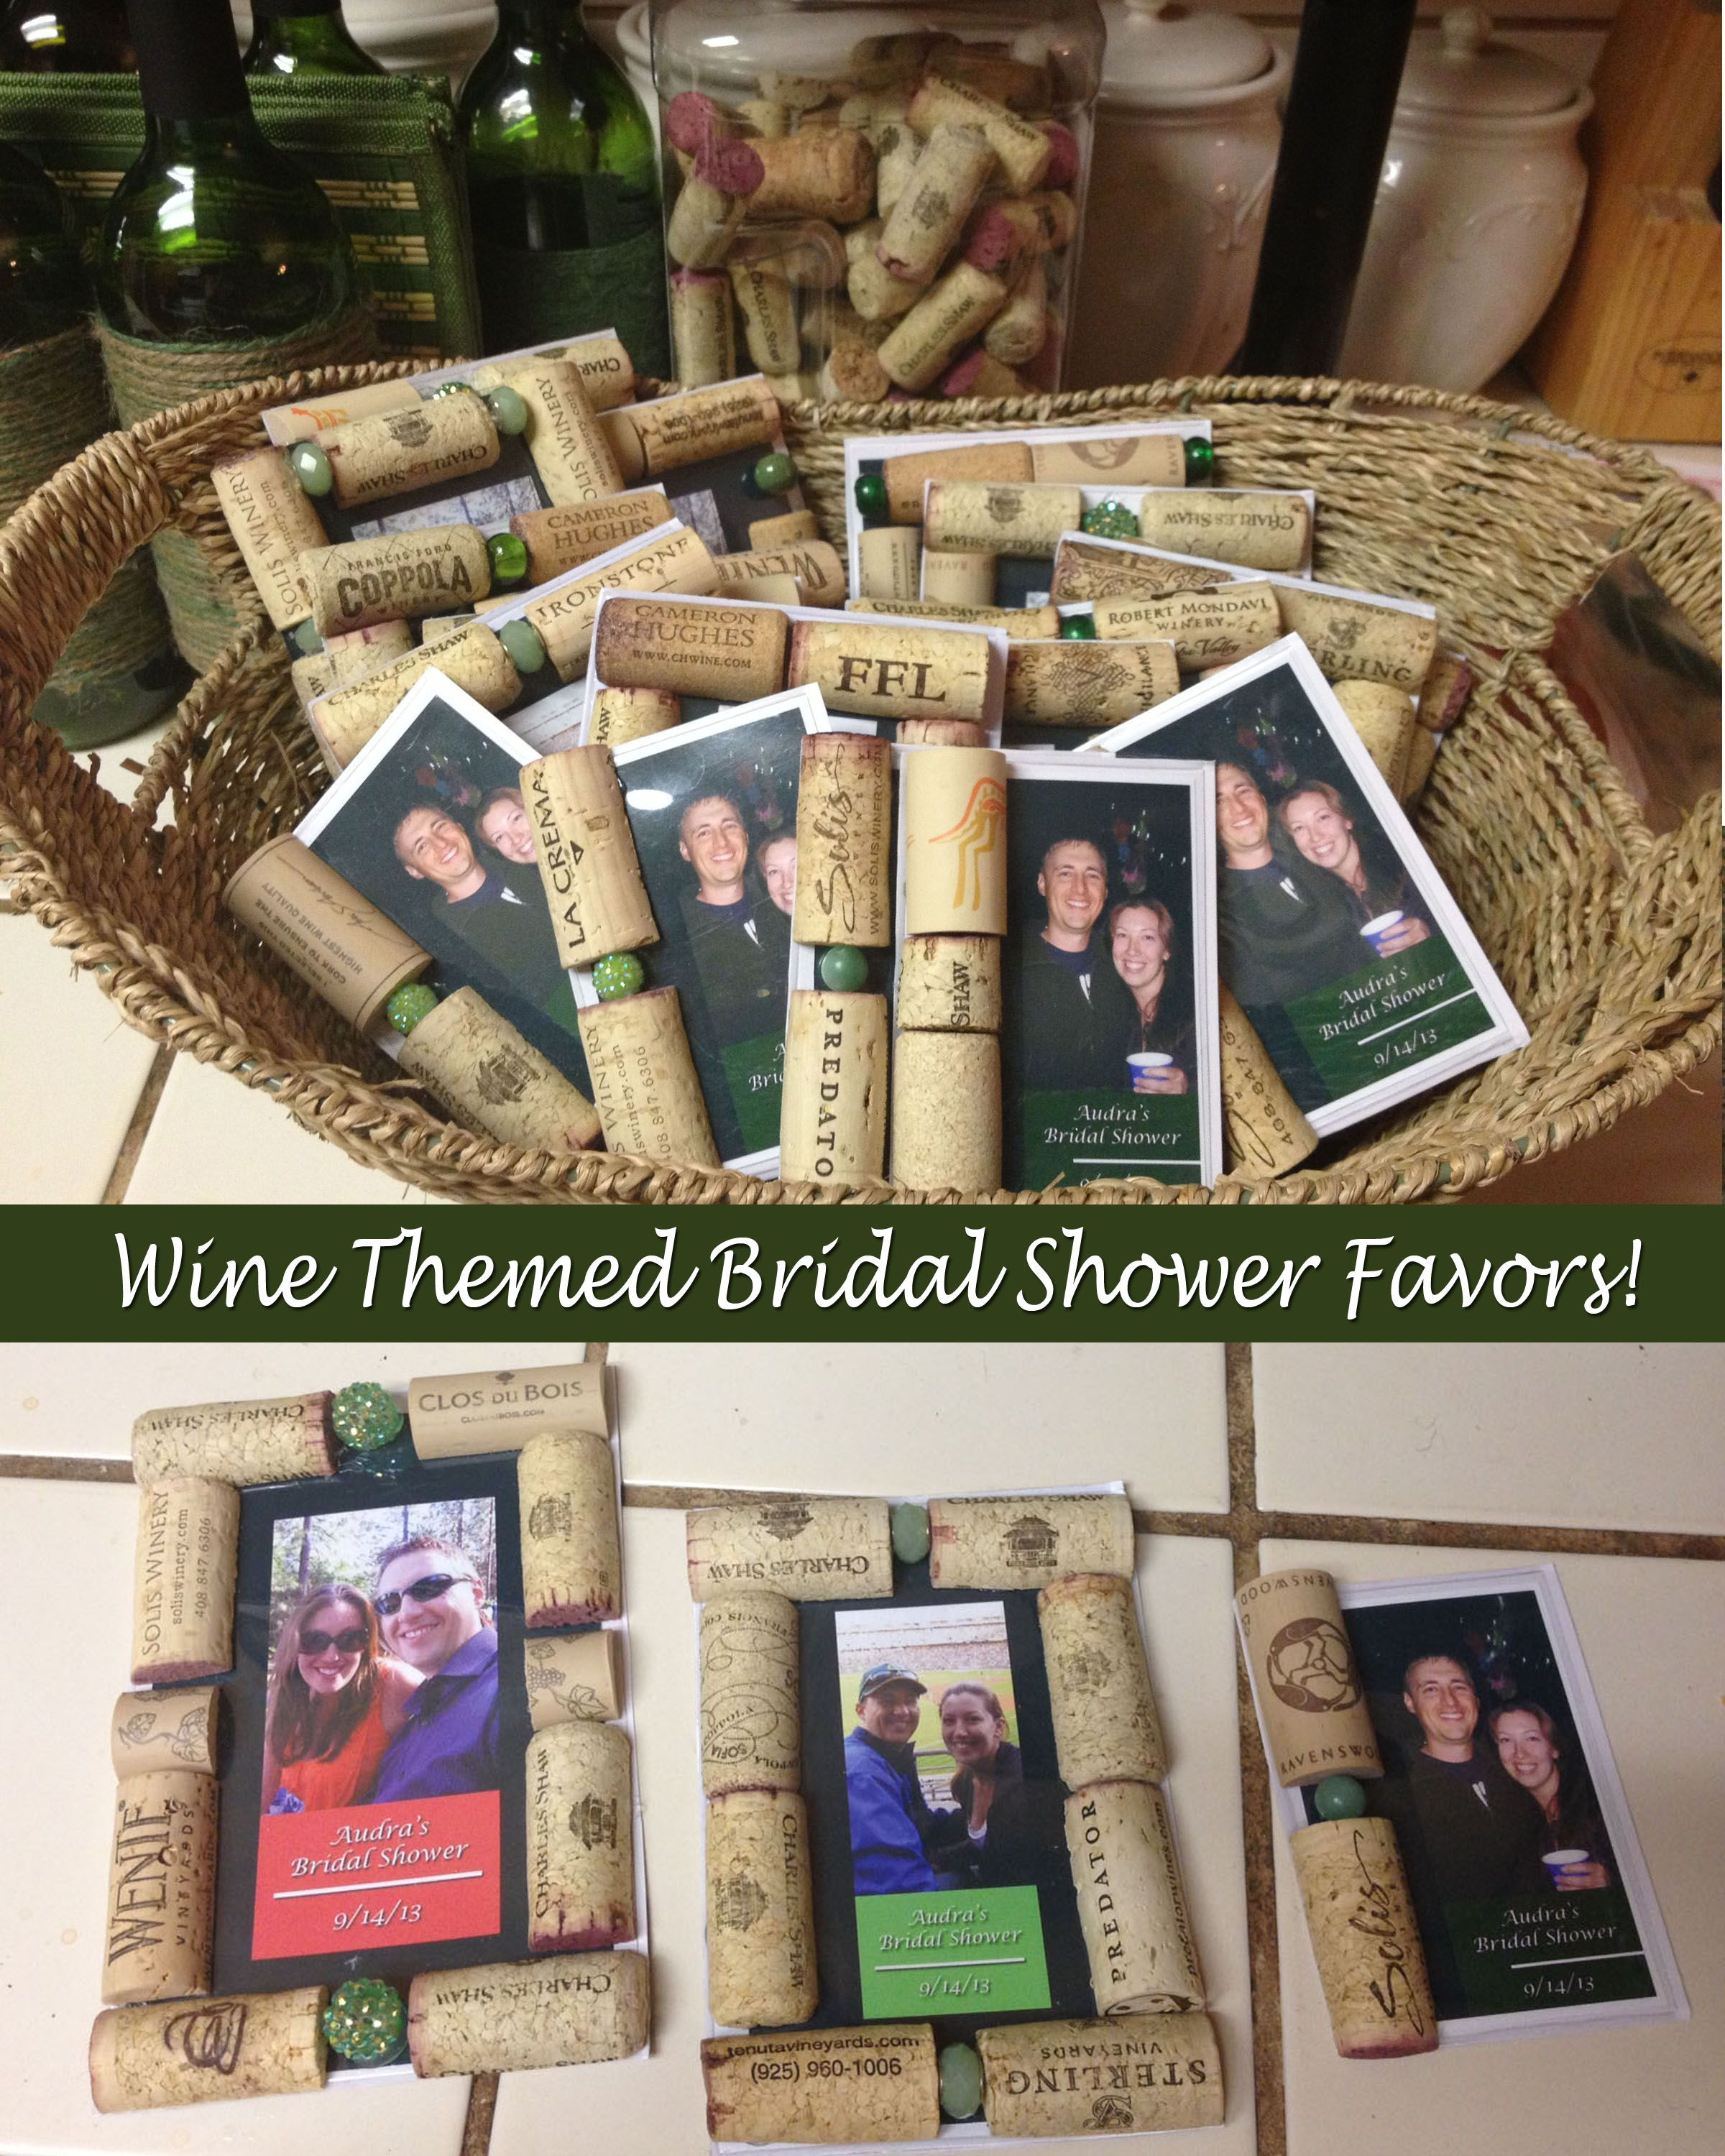 Wine Themed Bridal Shower Favors Made With Magnetic Photo Frames